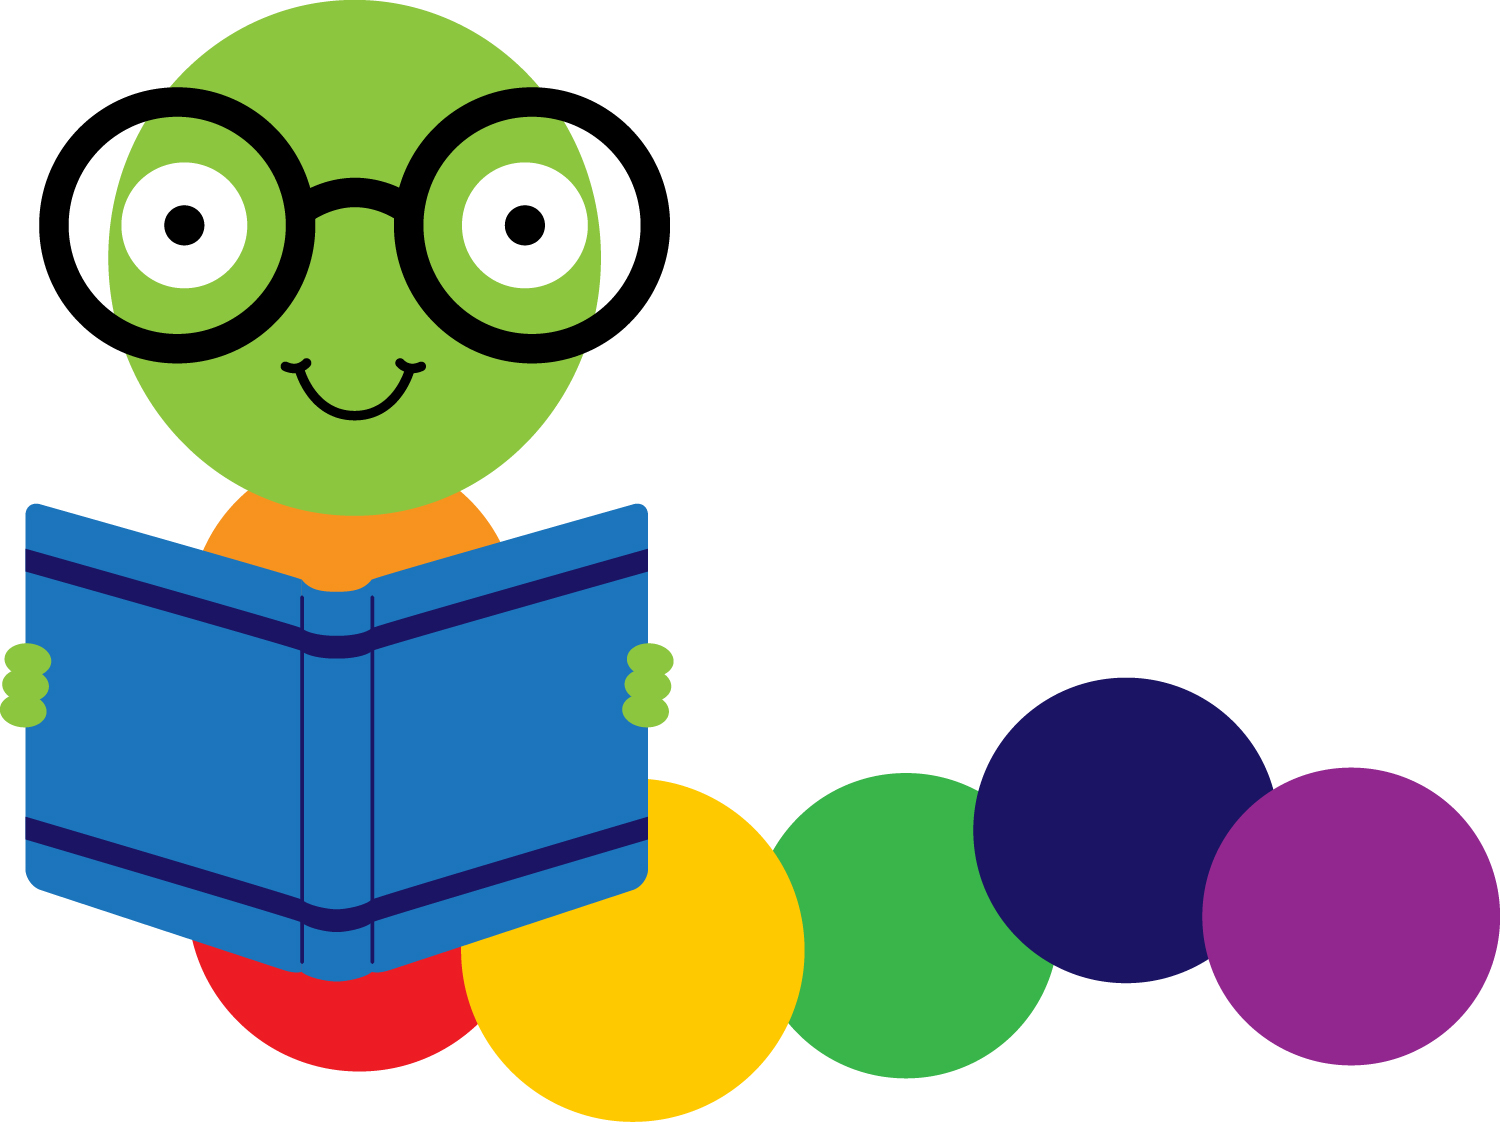 Reading worm clipart image royalty free download Free Bookworm Cliparts, Download Free Clip Art, Free Clip Art on ... image royalty free download